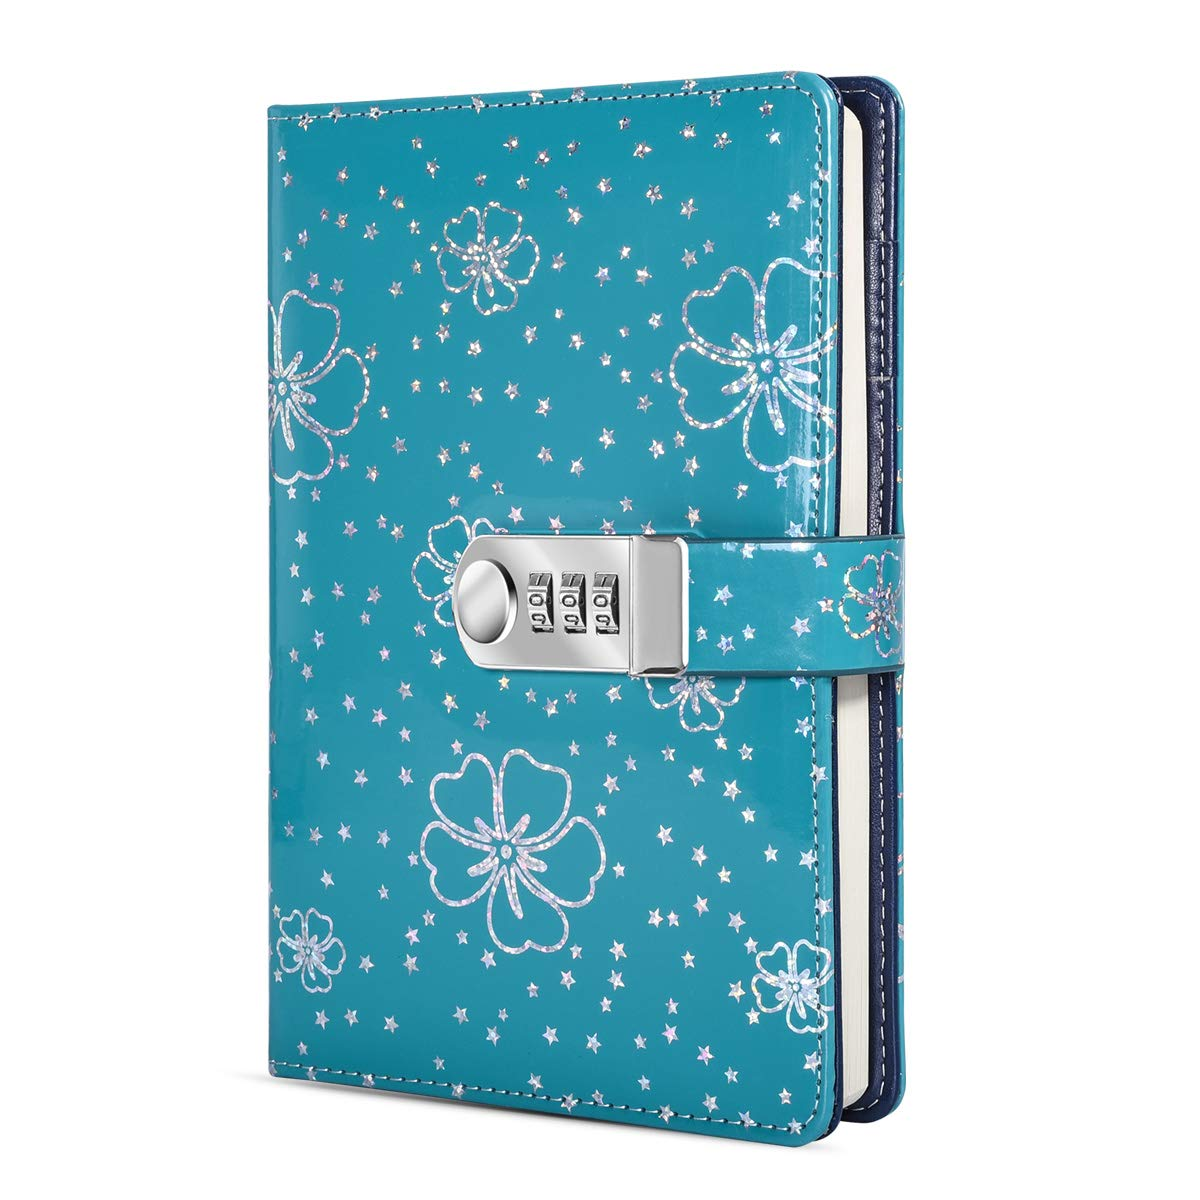 ARRLSDB PU Leather Journal with Lock, A5 Size Diary with Combination Lock (Journal with Combination Lock) Password Notebook Locking Student Diary Notepad (Green)